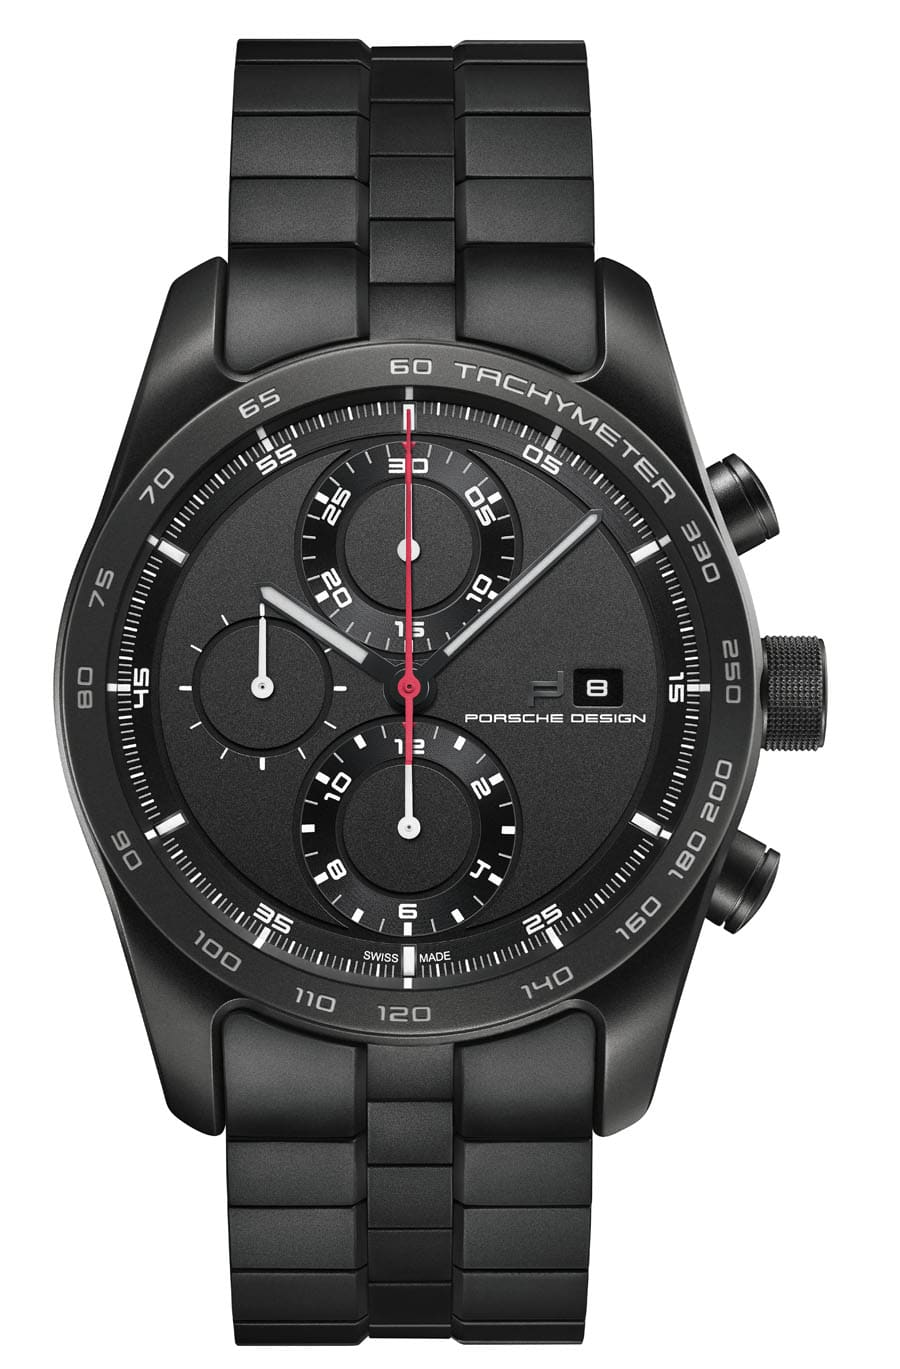 Porsche Design: Chronotimer Series 1